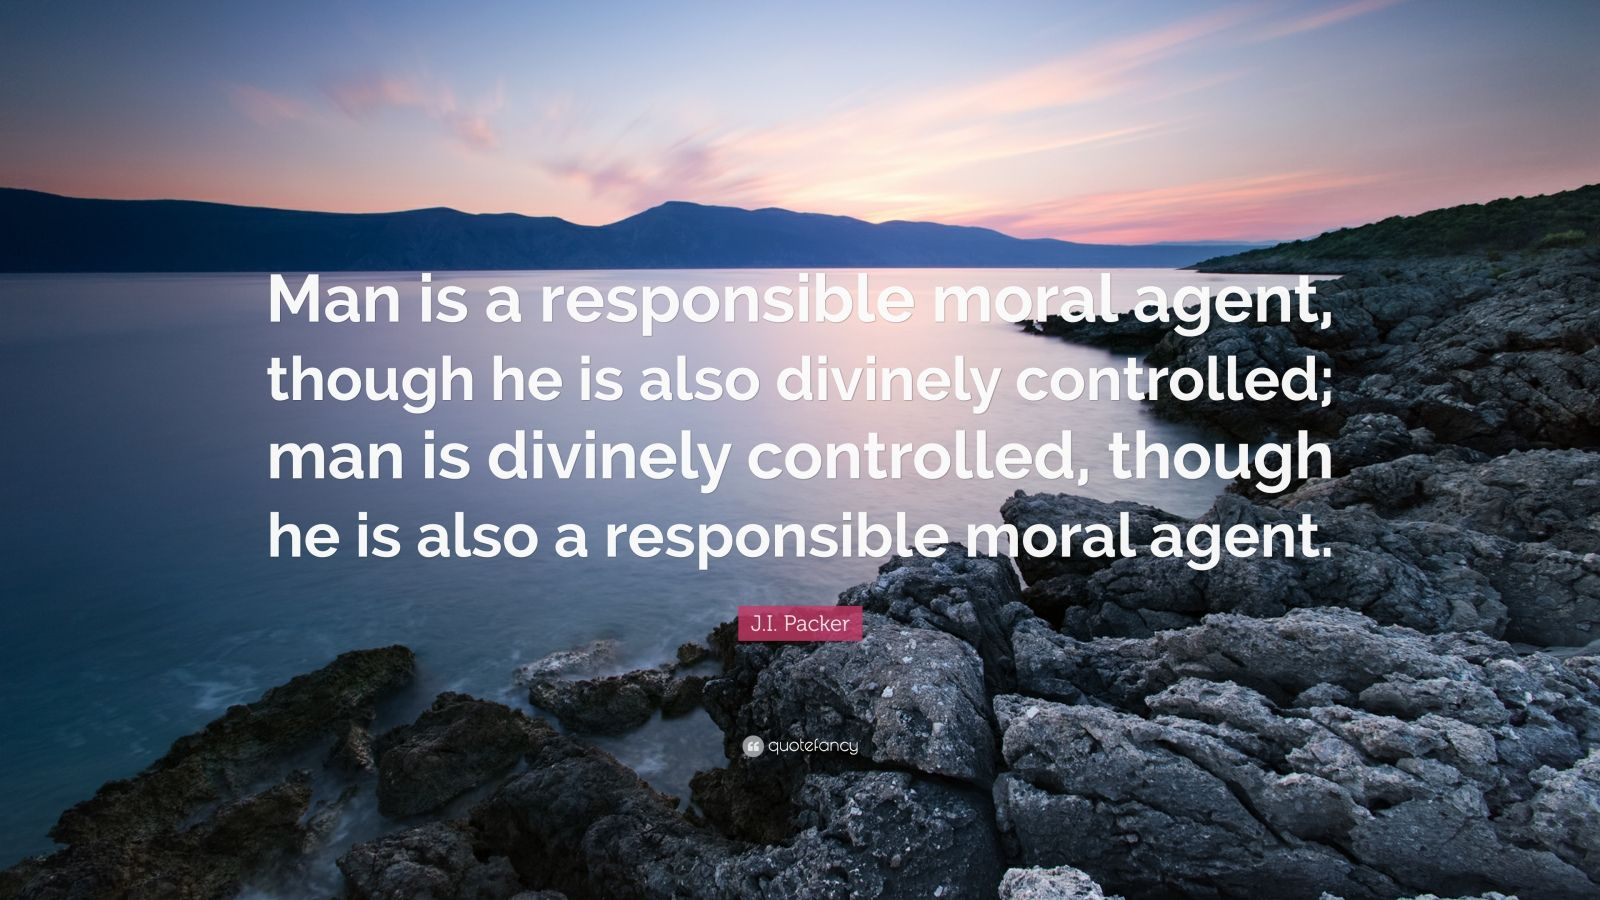 """J.I. Packer Quote: """"Man is a responsible moral agent, though he is also divinely controlled; man is divinely controlled, though he is also a responsible moral agent."""""""